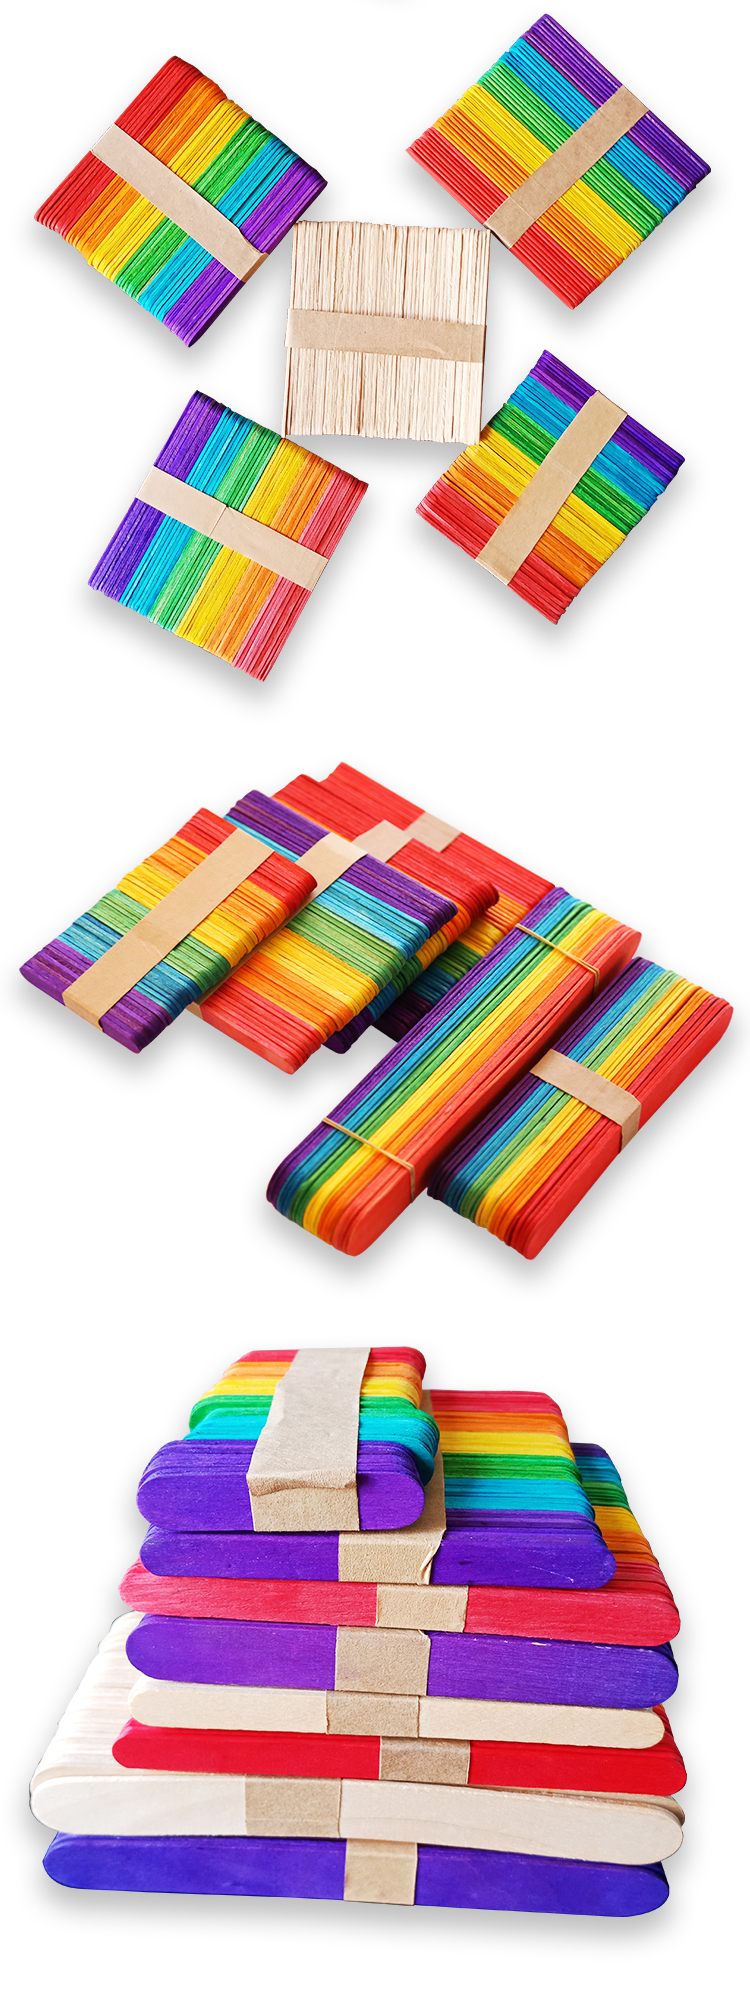 Colored wood craft popsicle sticks for DIY Art Crafts Kids Hand Crafts Art Tool